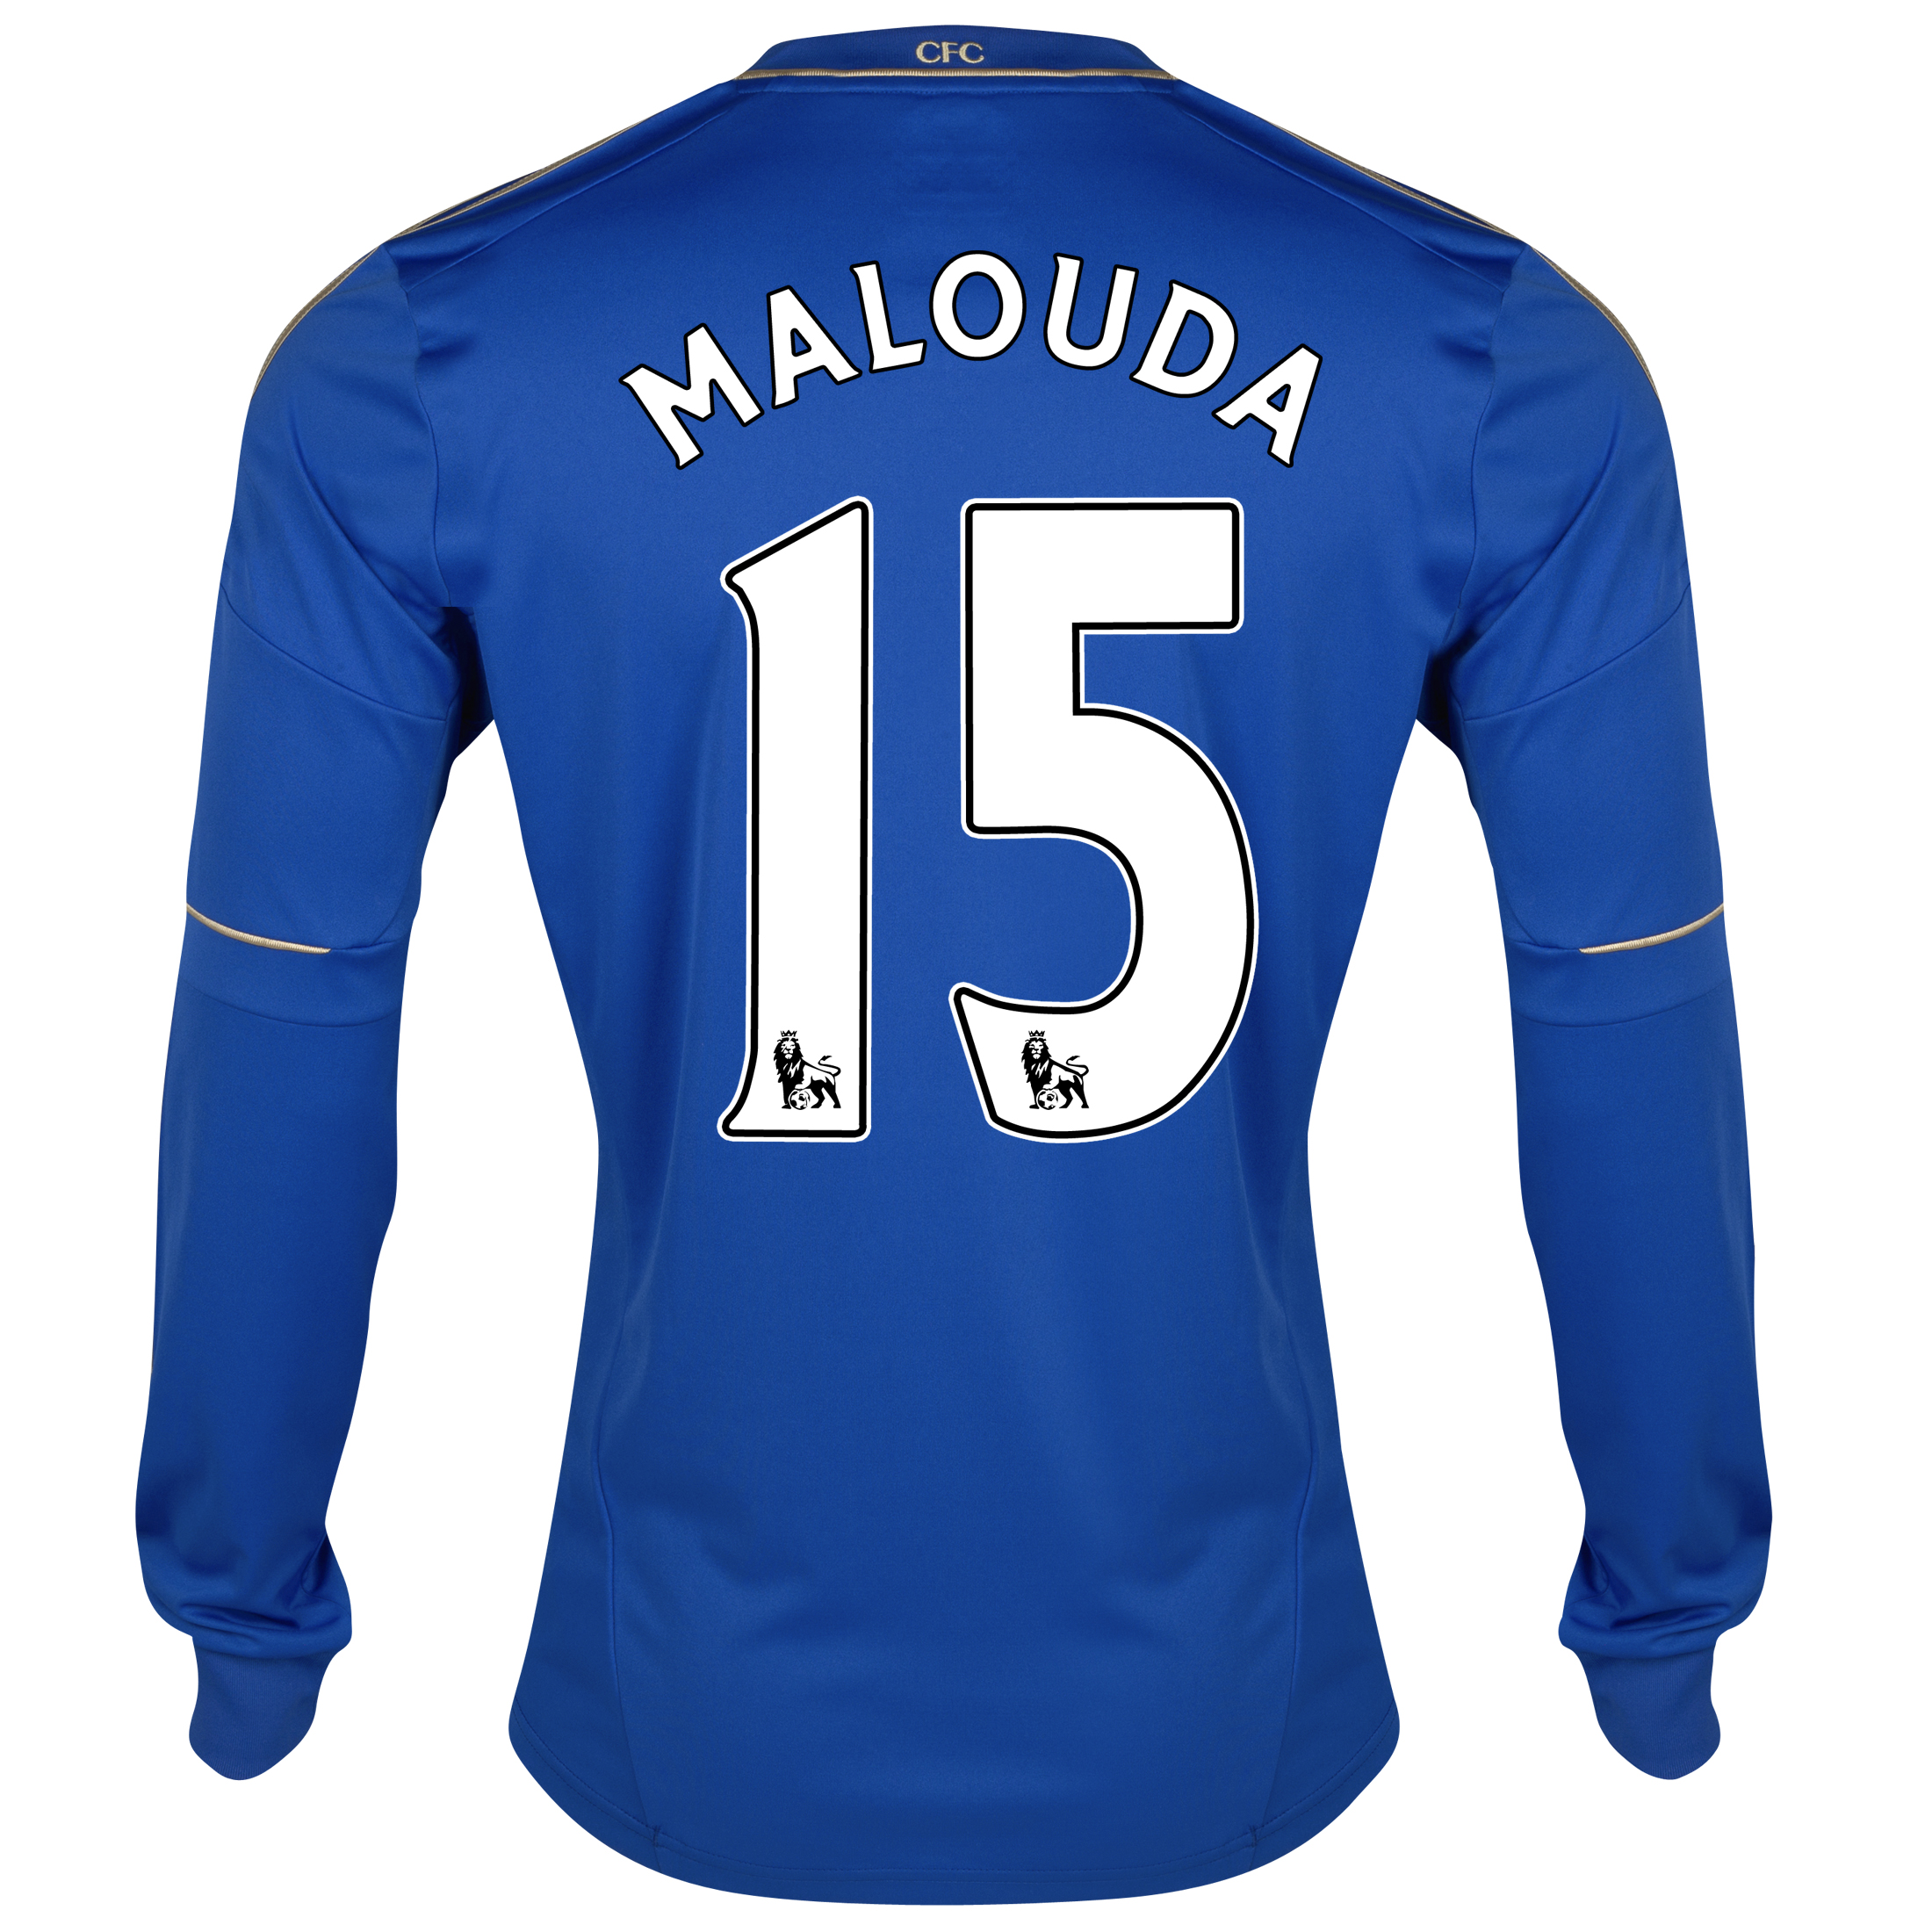 Chelsea Home Shirt 2012/13 - Long Sleeved - Youths with Malouda 15 printing